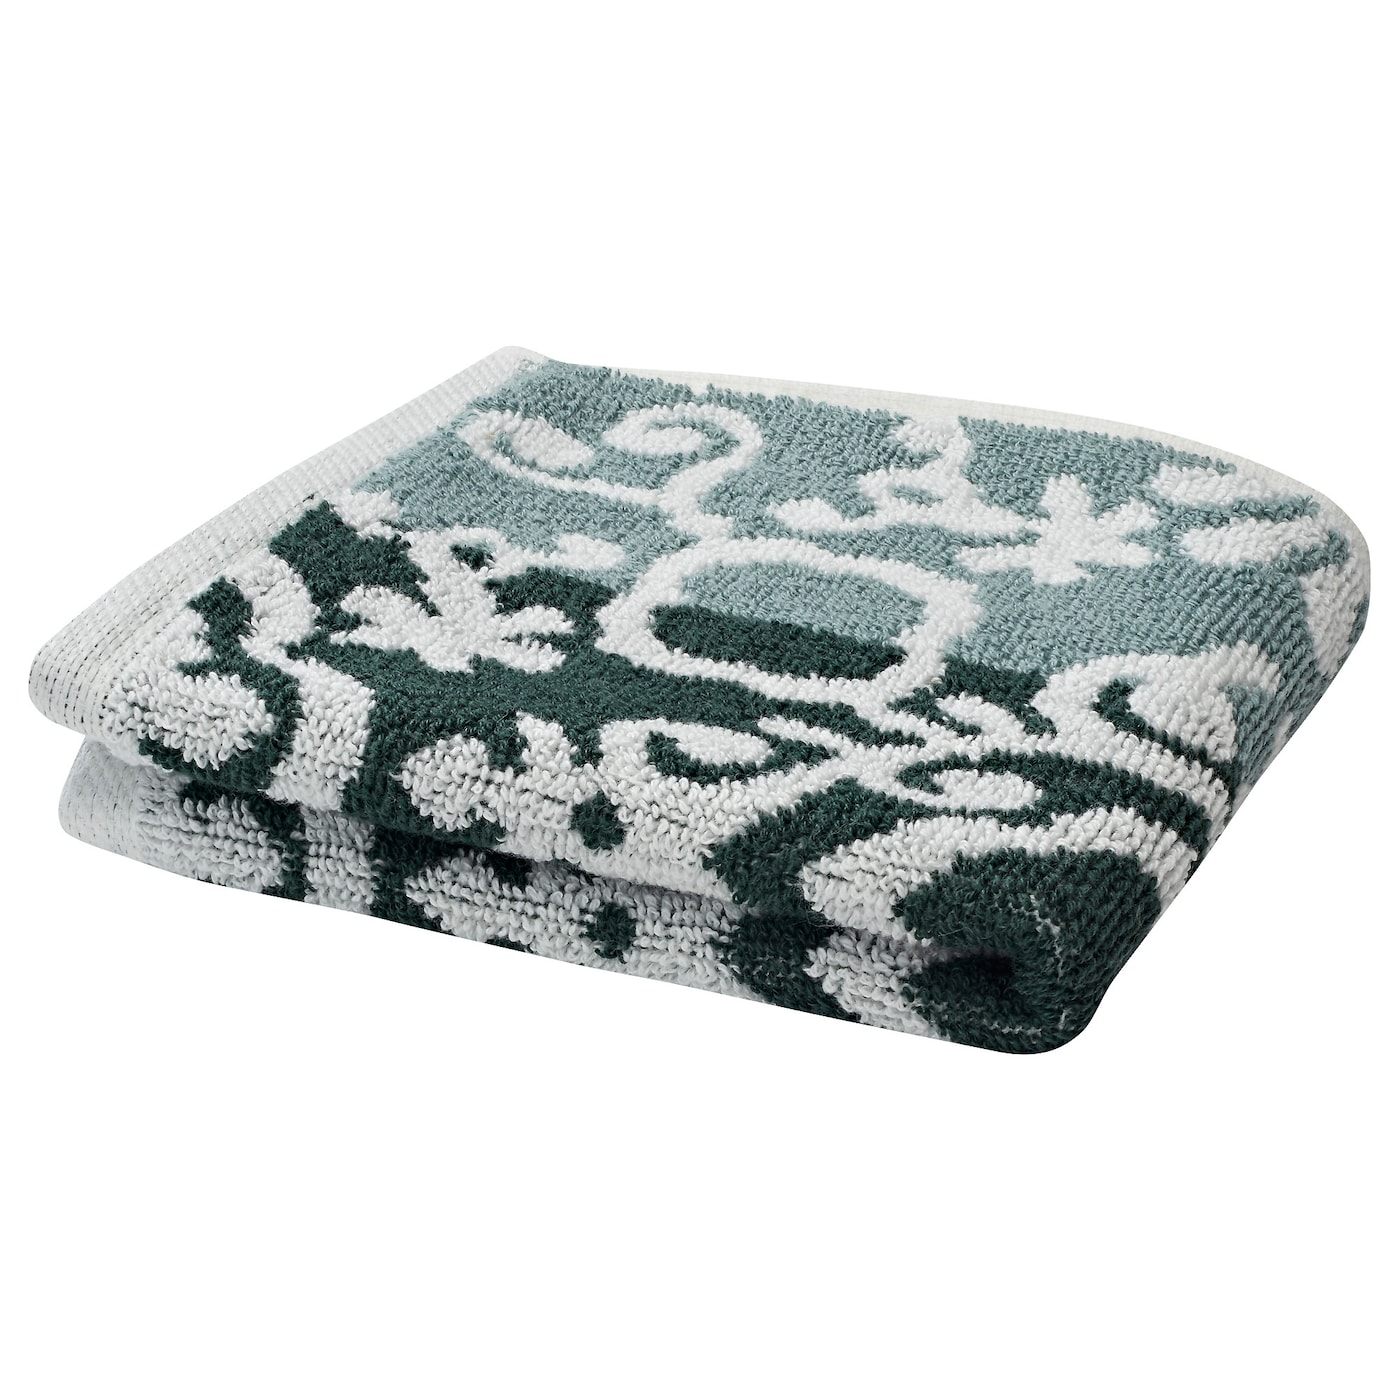 IKEA BLÄDJAN washcloth The long, fine fibres of combed cotton create a soft and durable towel.